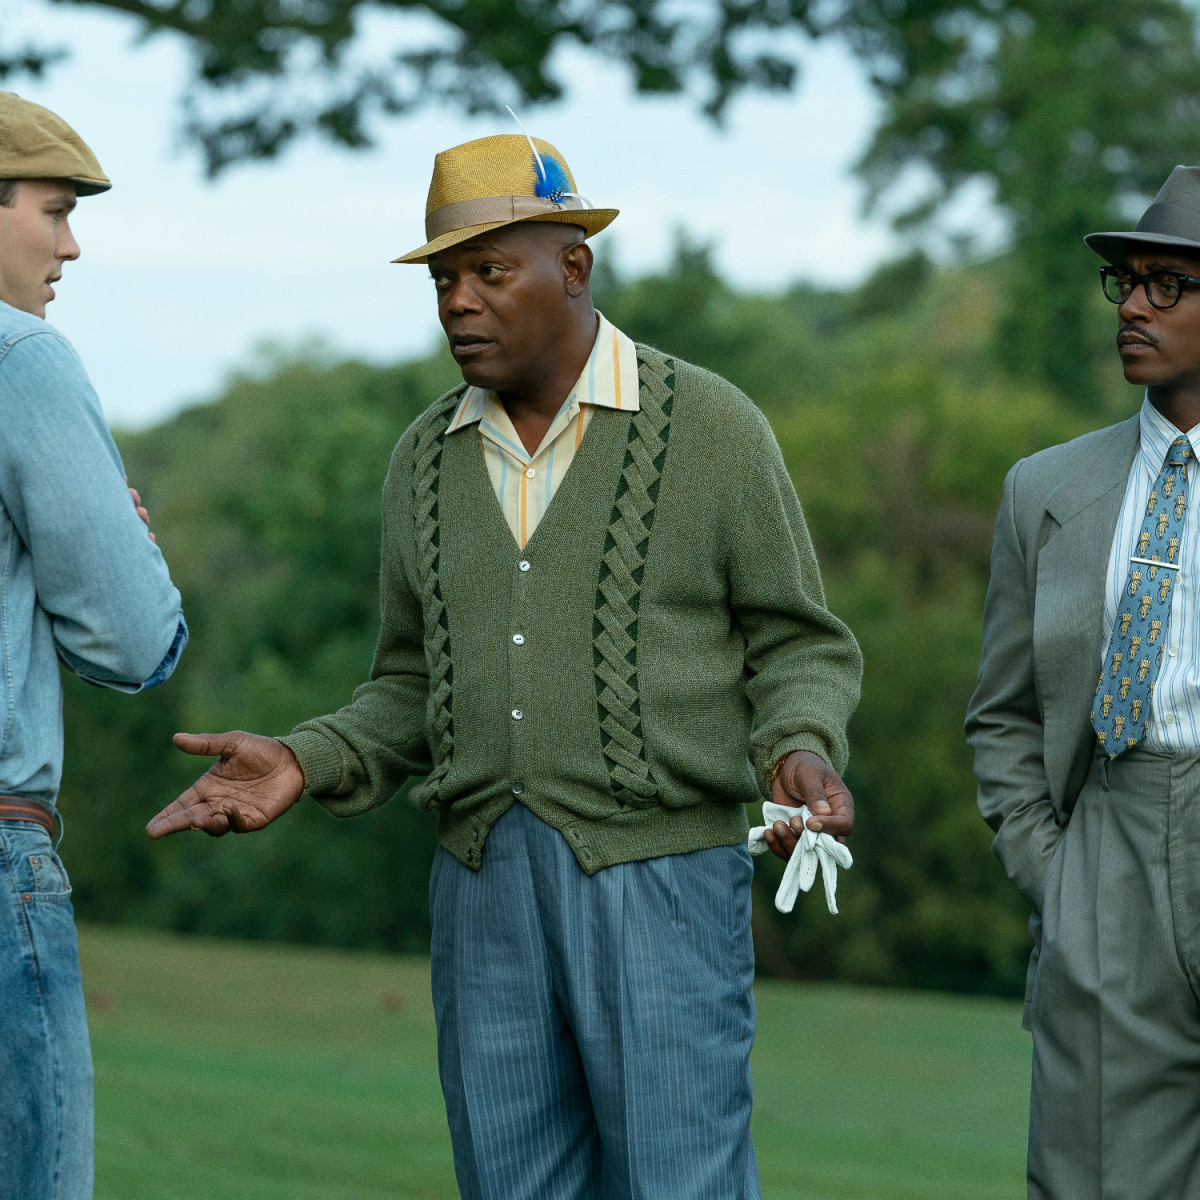 Nicholas Hoult, Samuel L. Jackson, and Anthony Mackie in The Banker